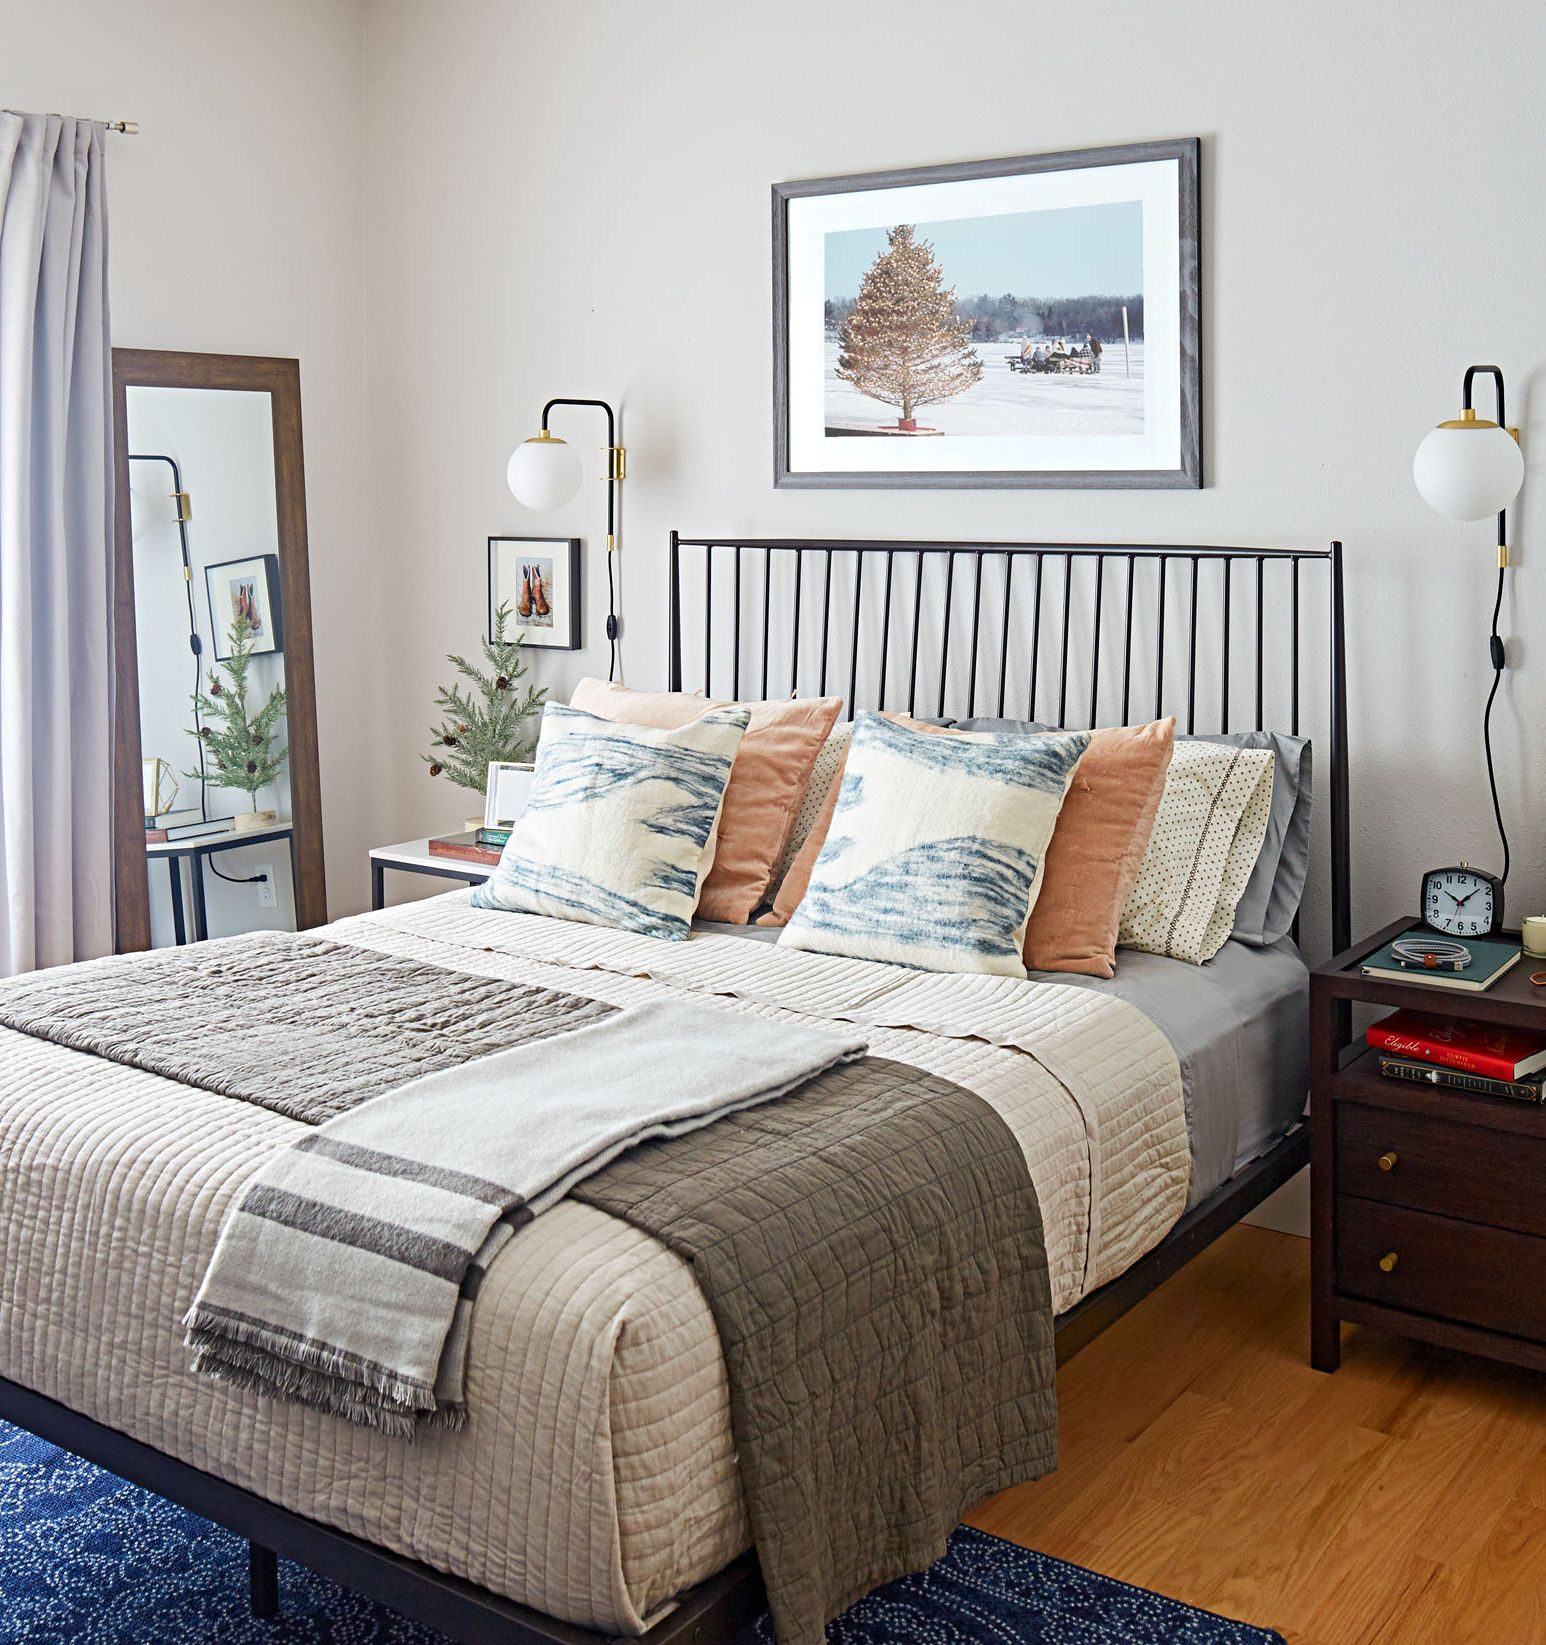 Beautiful Master Bedroom Decorating Ideas 43 I Like The: How To Make Your Guest Room Feel Like Home